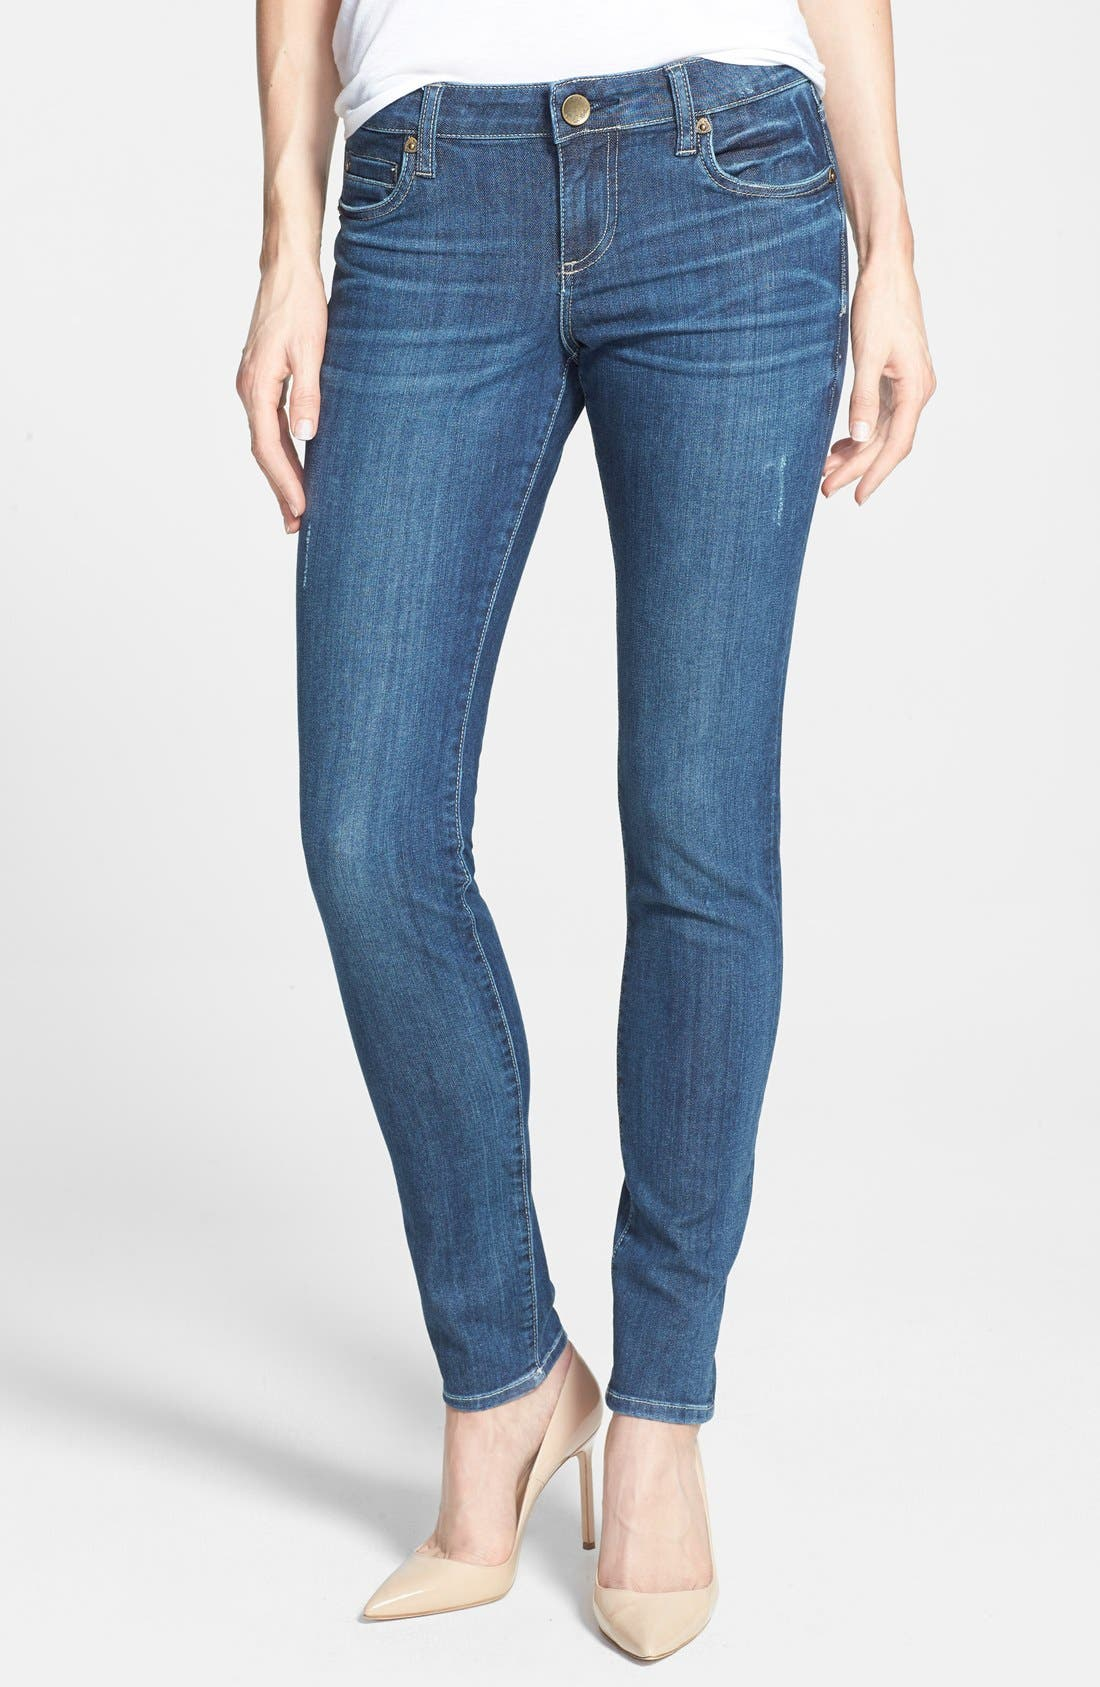 Main Image - KUT from the Kloth 'Mia' Stretch Skinny Jeans (Effect) (Regular & Petite)